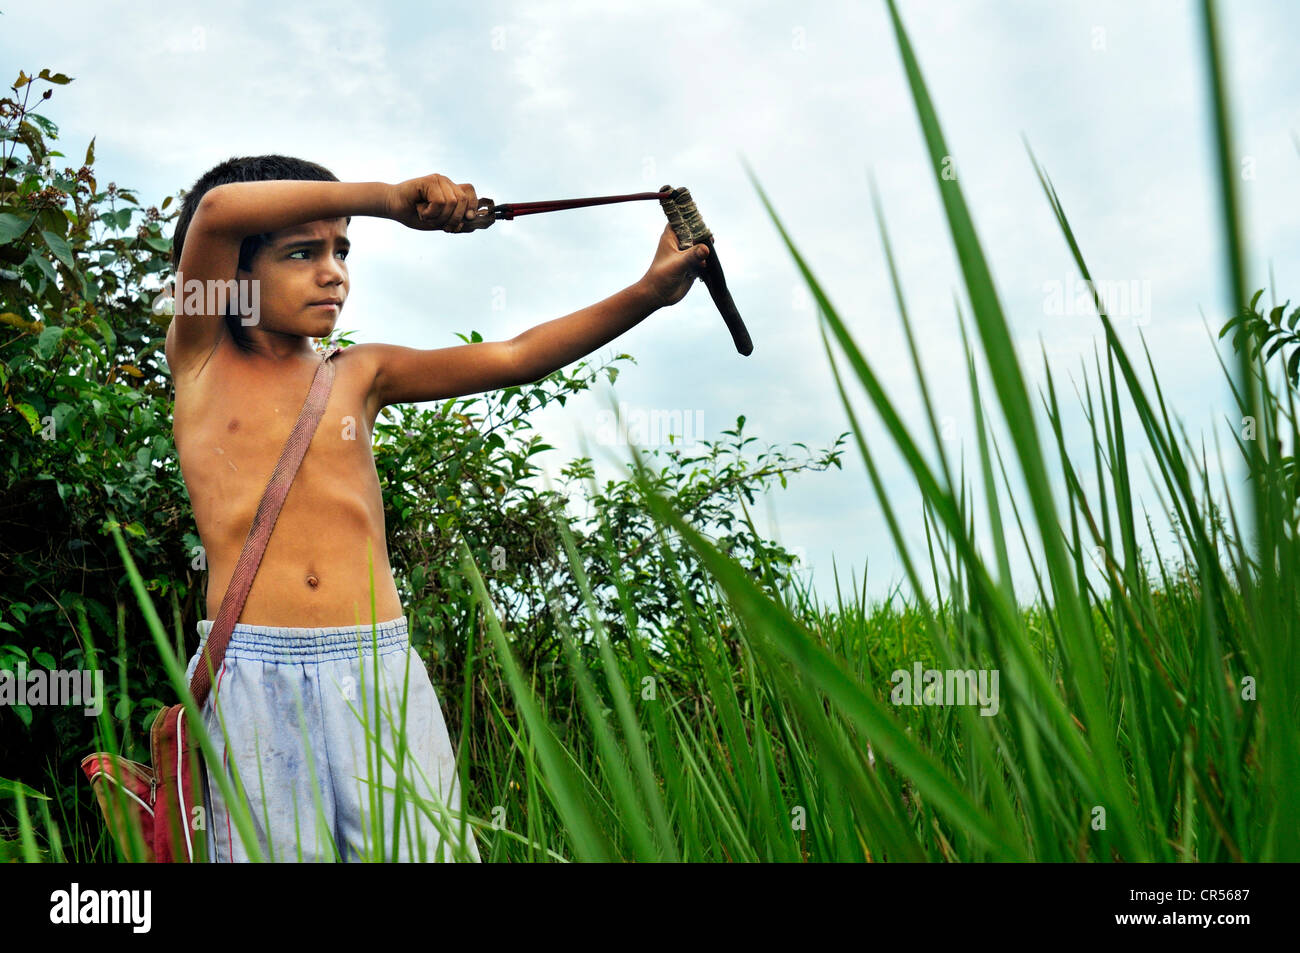 Boy hunting songbirds with a slingshot, Acampamento 12 de Otubro landless camp, Movimento dos Trabalhadores Rurais - Stock Image